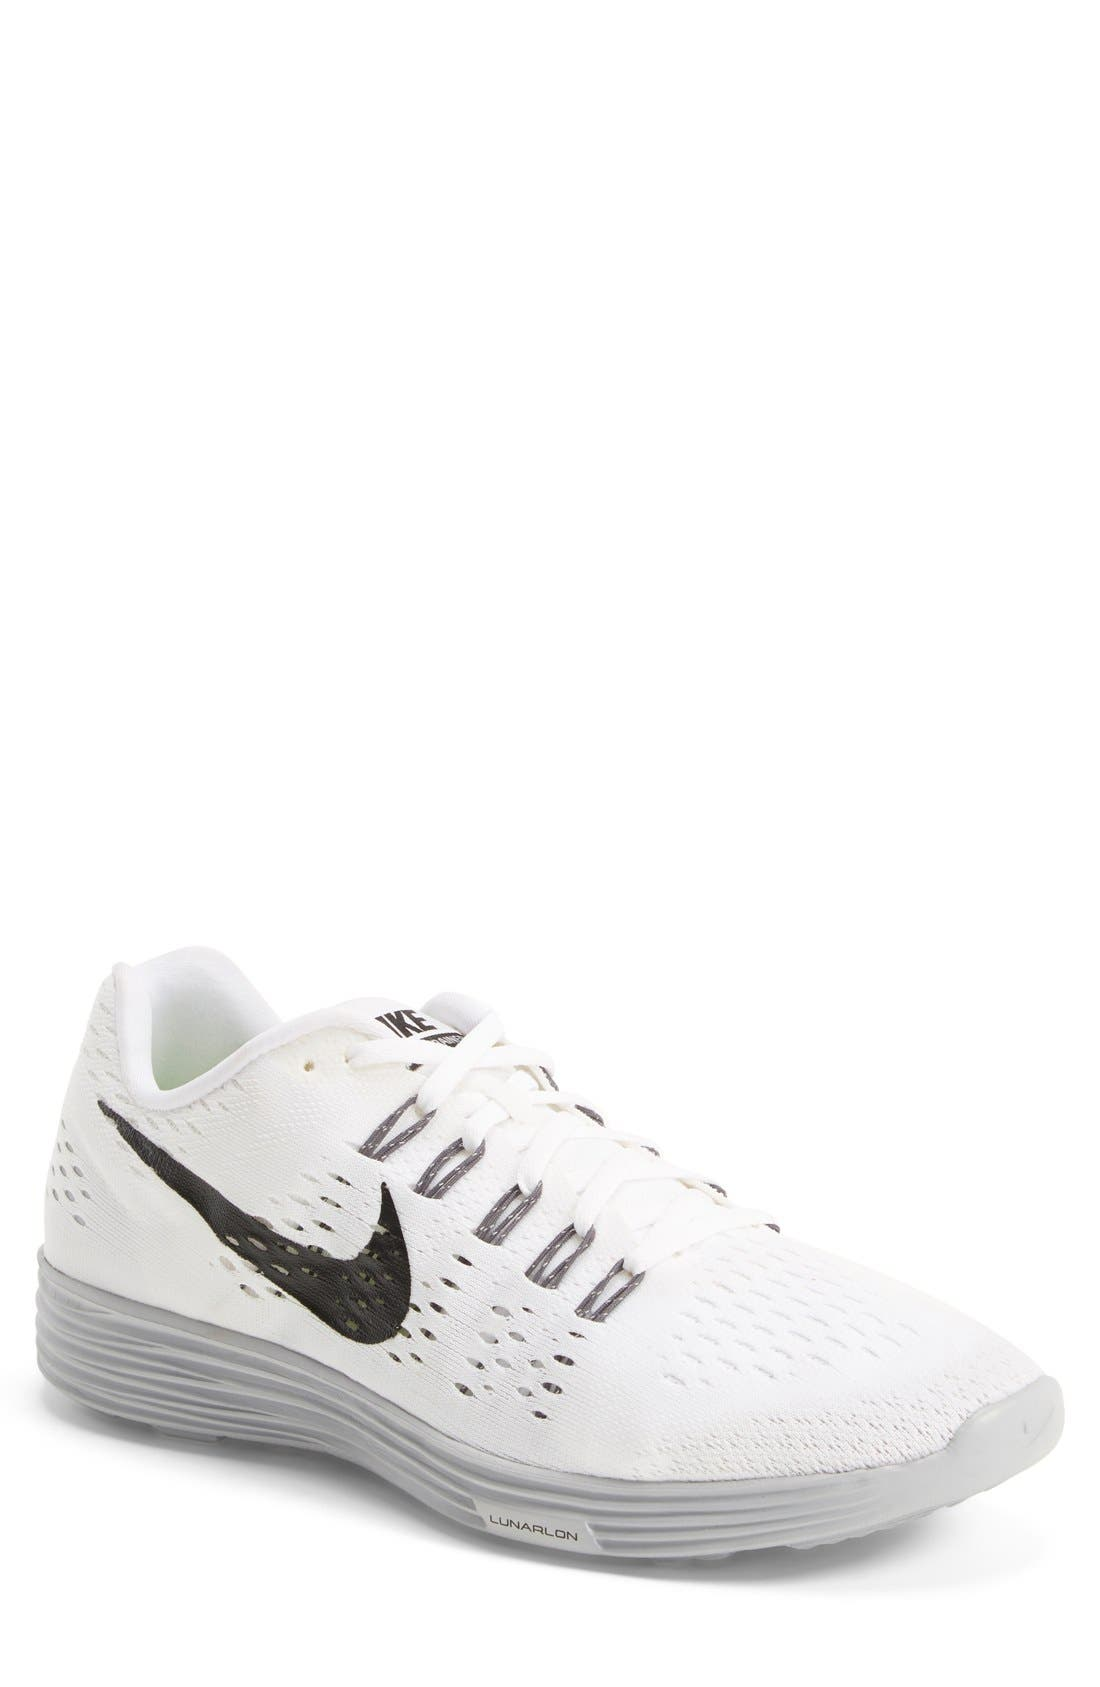 Main Image - Nike 'LunarTempo' Running Shoe (Men)